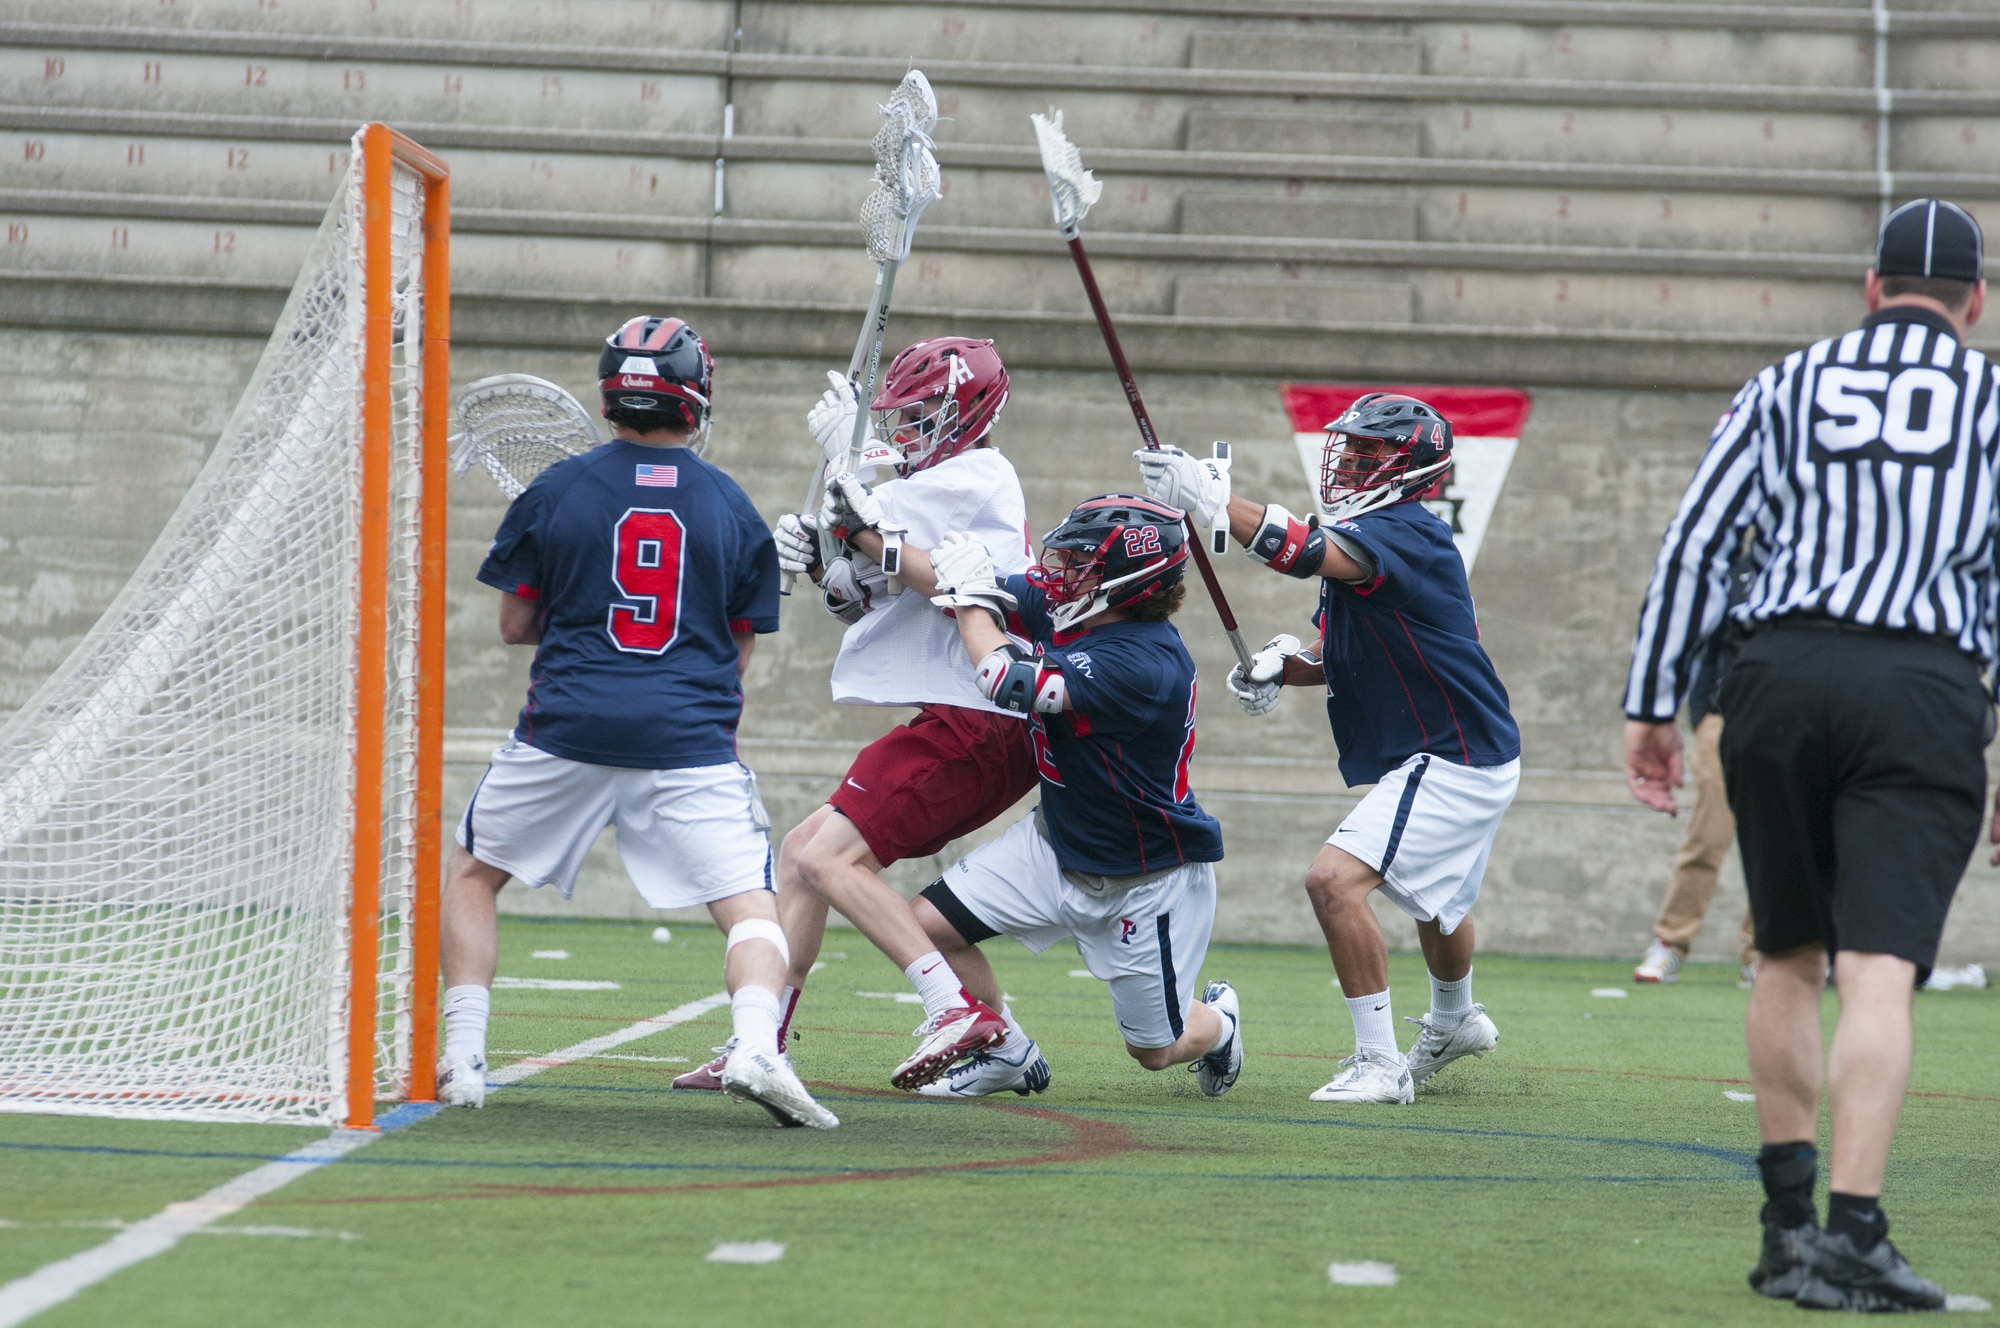 The men's lacrosse team could not clinch an automatic bid to the NCAA Tournament after falling to Penn Sunday afternoon, 7-5.